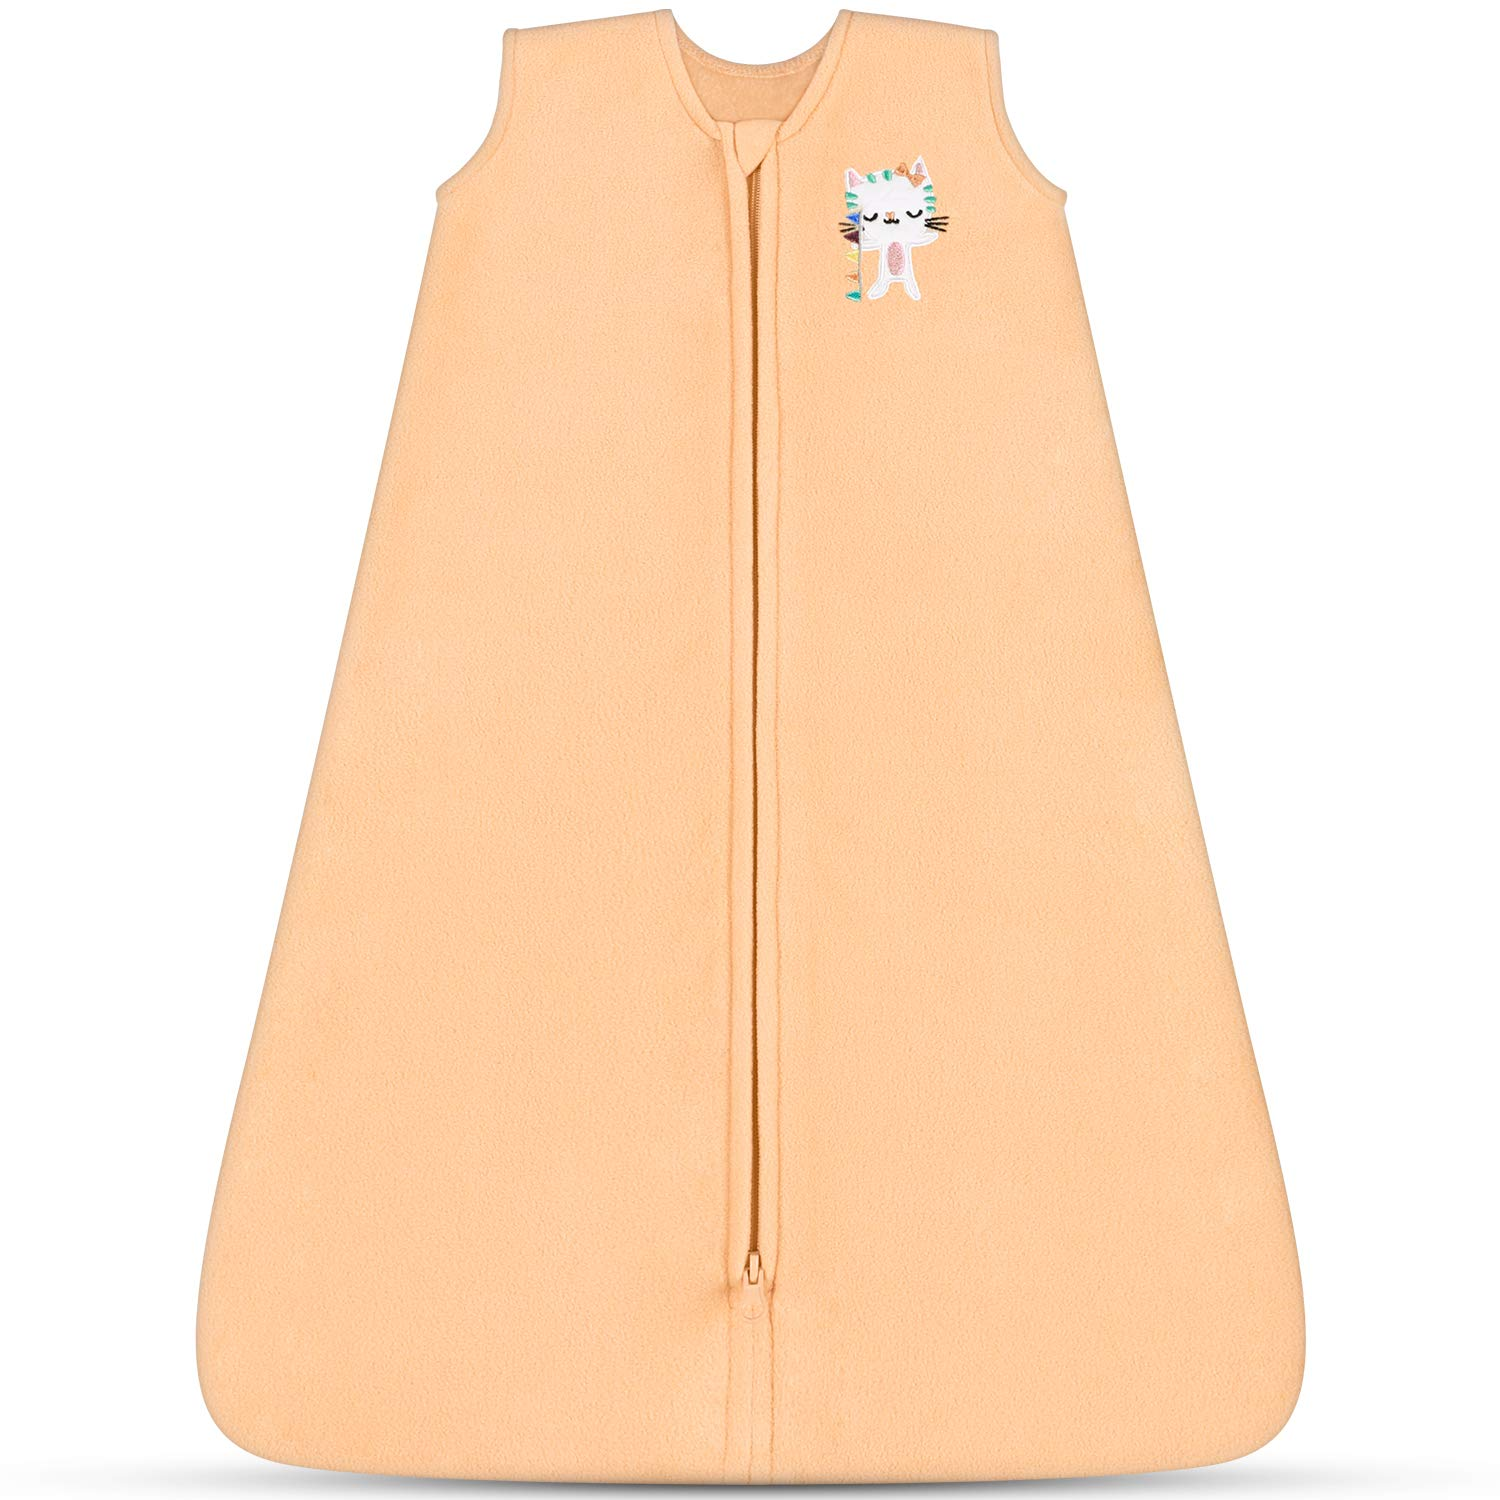 TILLYOU Micro-Fleece Baby Sleep Bag and Sack with Inverted Zipper, Fits Infants Babies Ages 0-6 Months, Sleeveless Warm and Soft Wearable Blanket TOG 1, Small S, Orange Cat